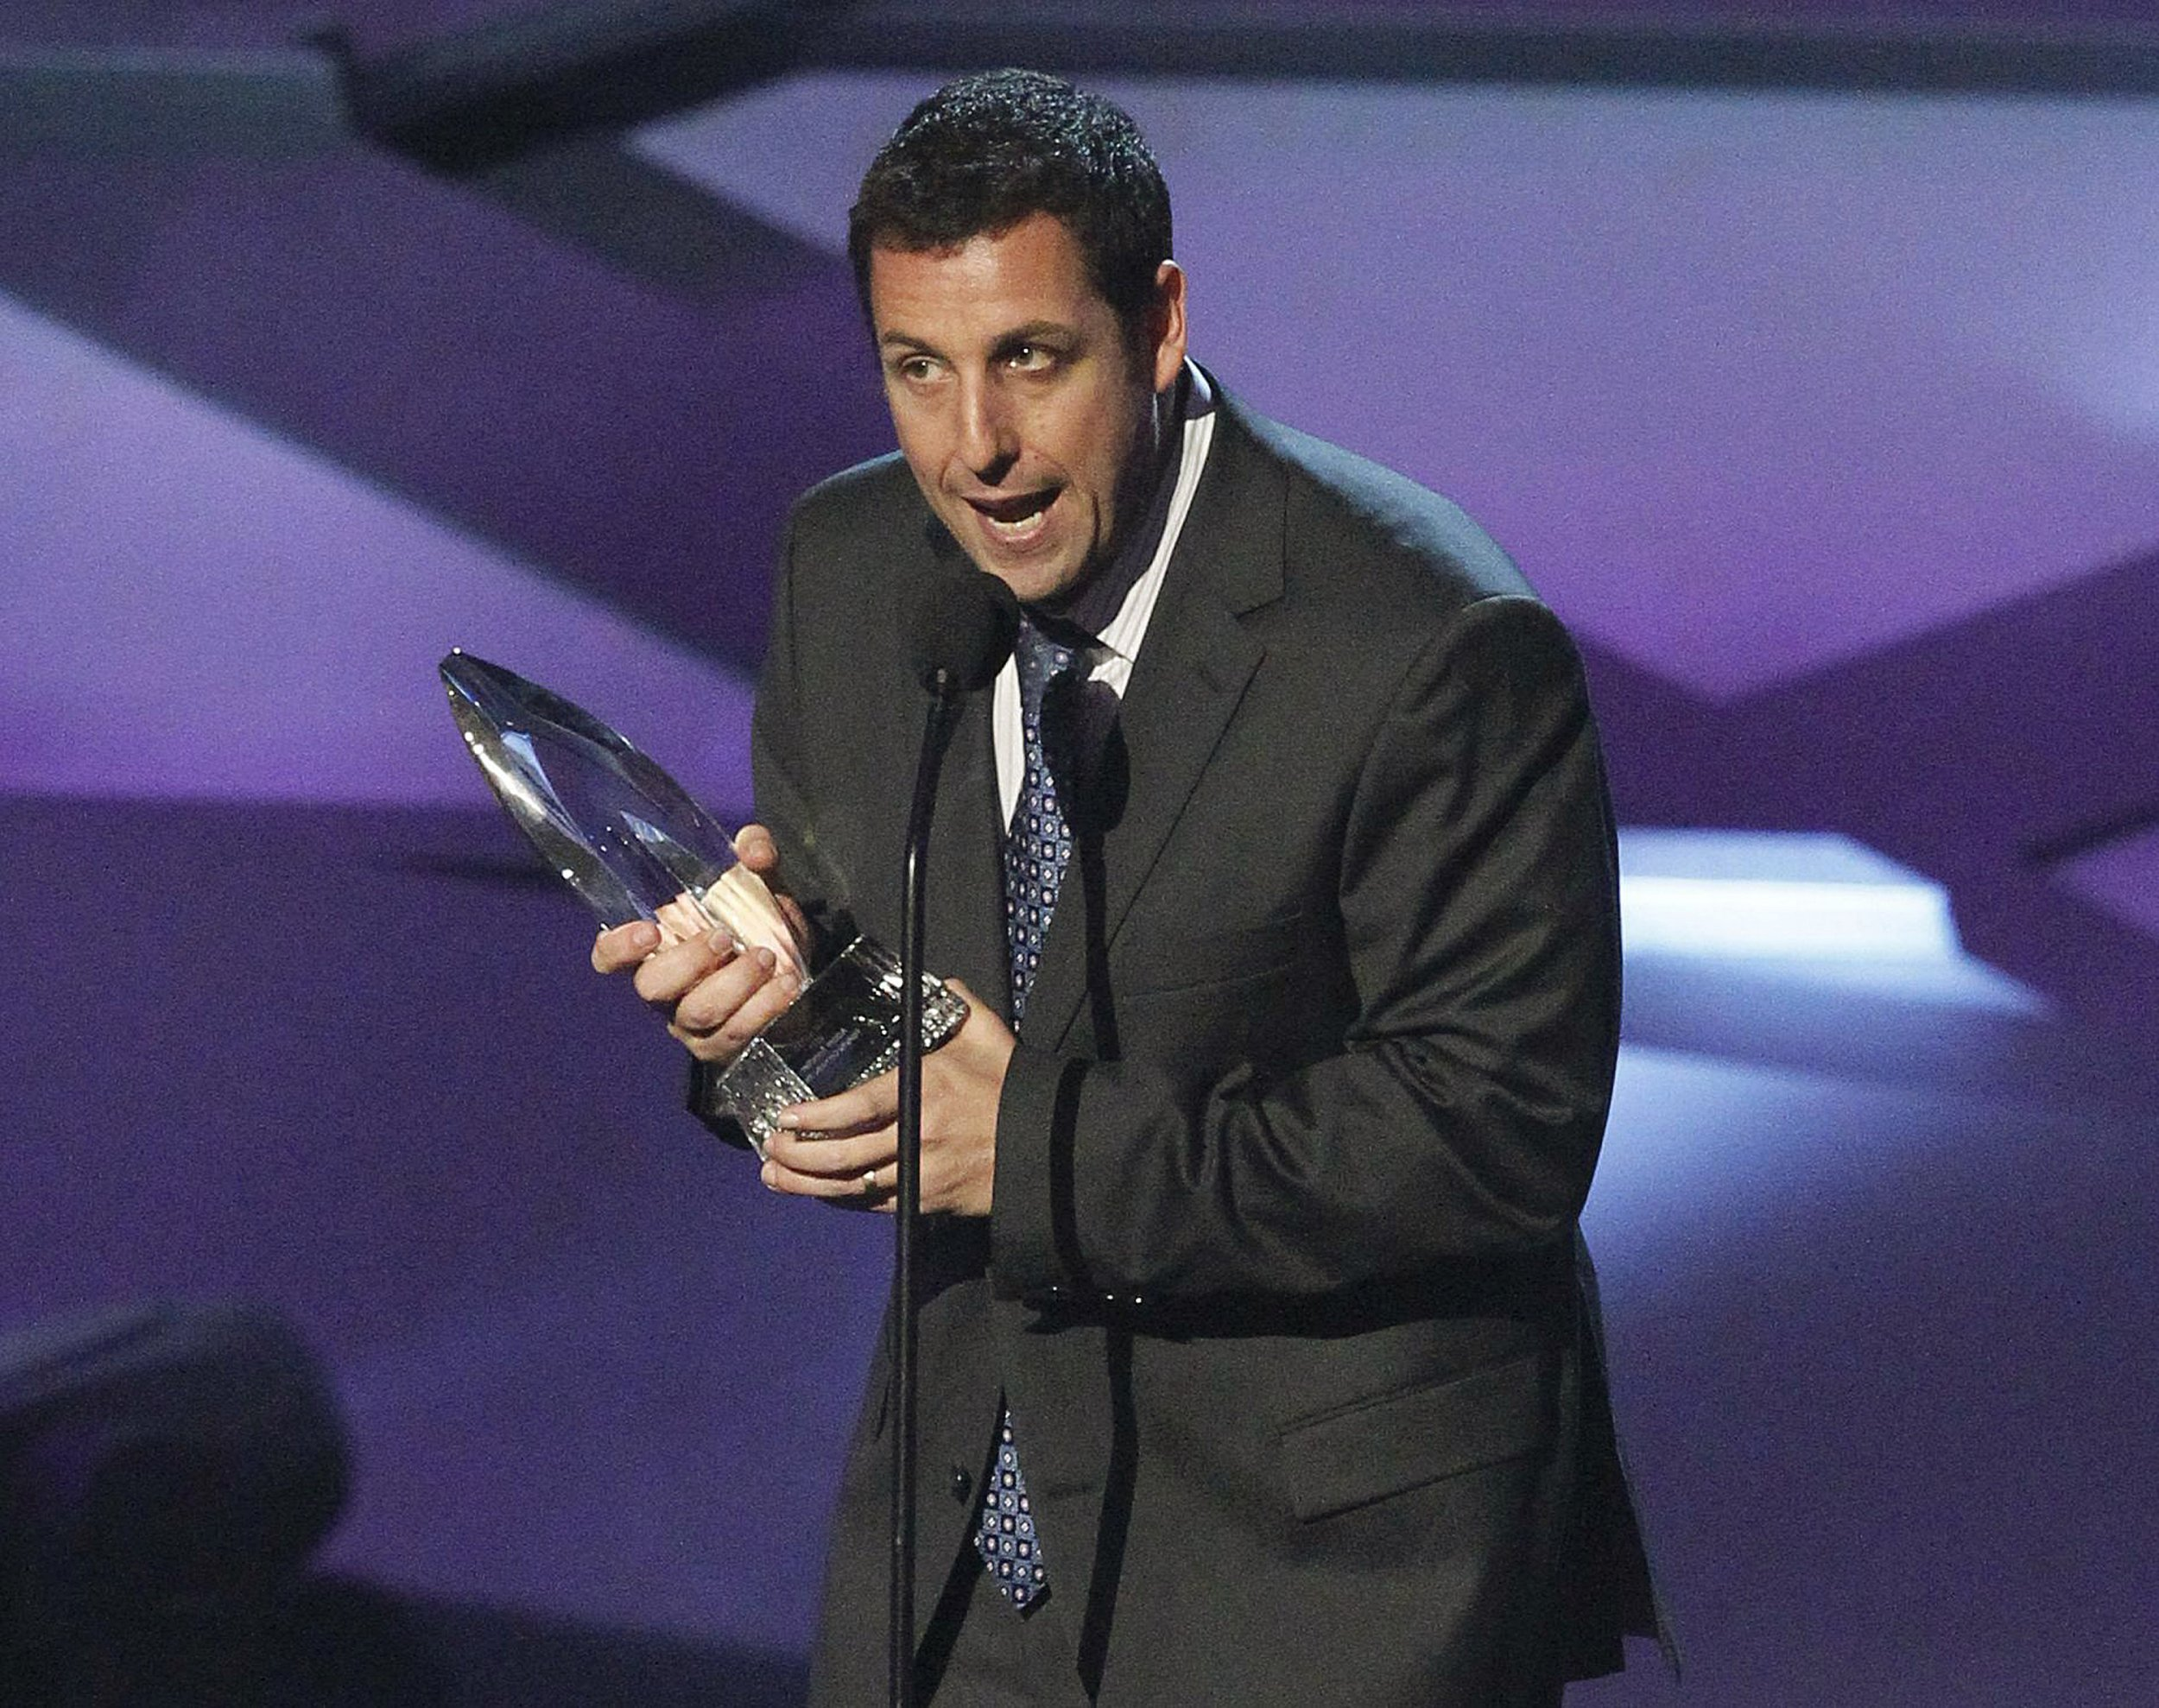 """life and career of adam sandler Adam sandler's new comedy-fantasy film """"the cobbler"""" joins a long list of box-office flops that have plagued the jewish-american comedian's career in recent years it may not have been made with a particularly large budget (an estimated $10 million), but, nonetheless, it is increasingly hard ."""